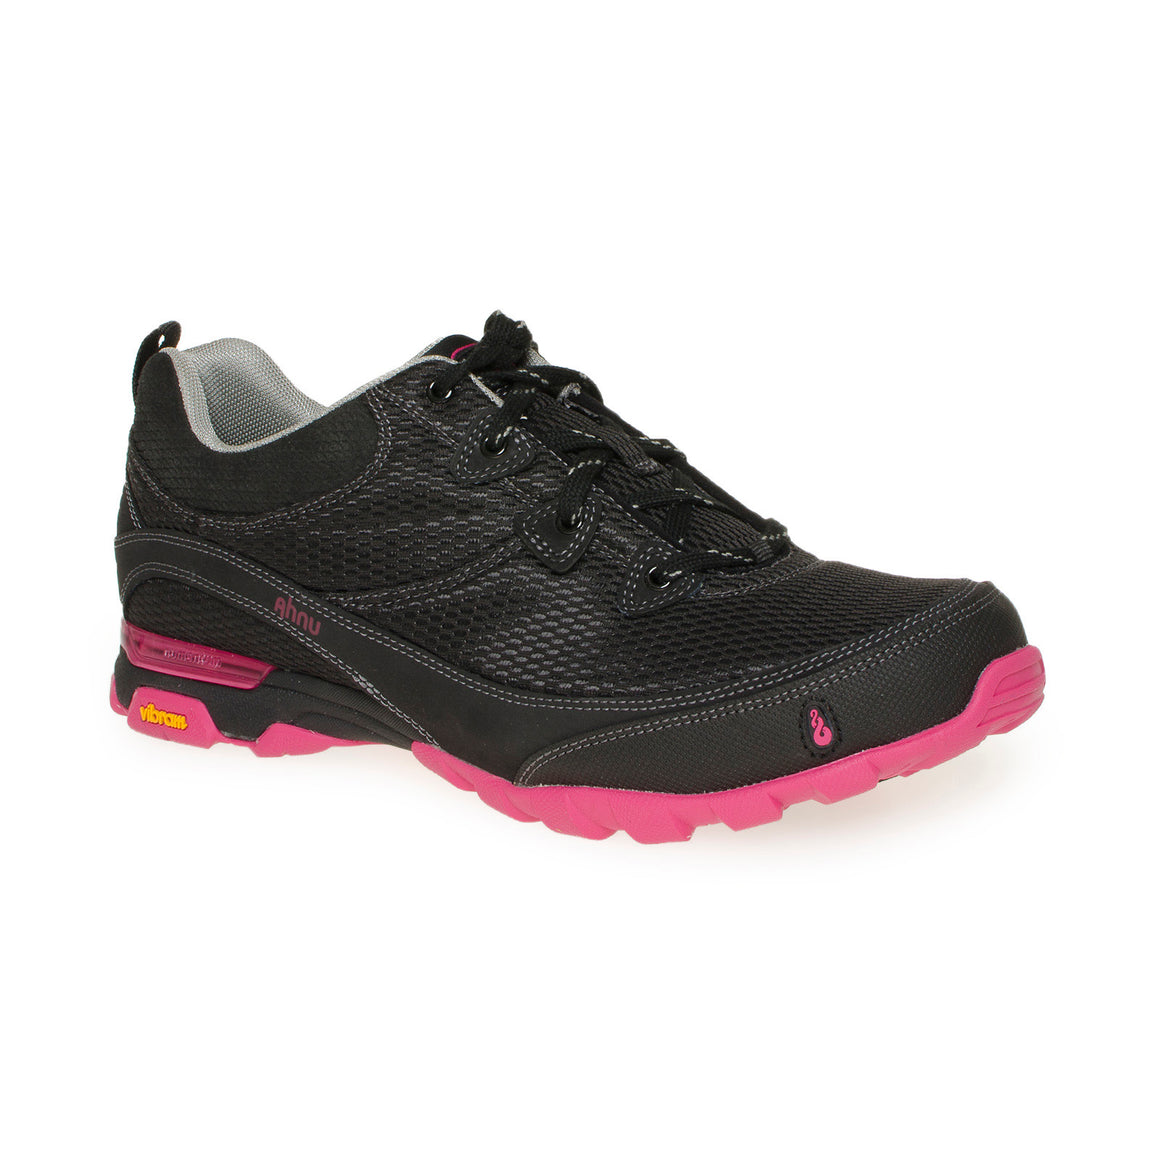 AHNU Sugarpine Air Mesh Black / Pink Boots